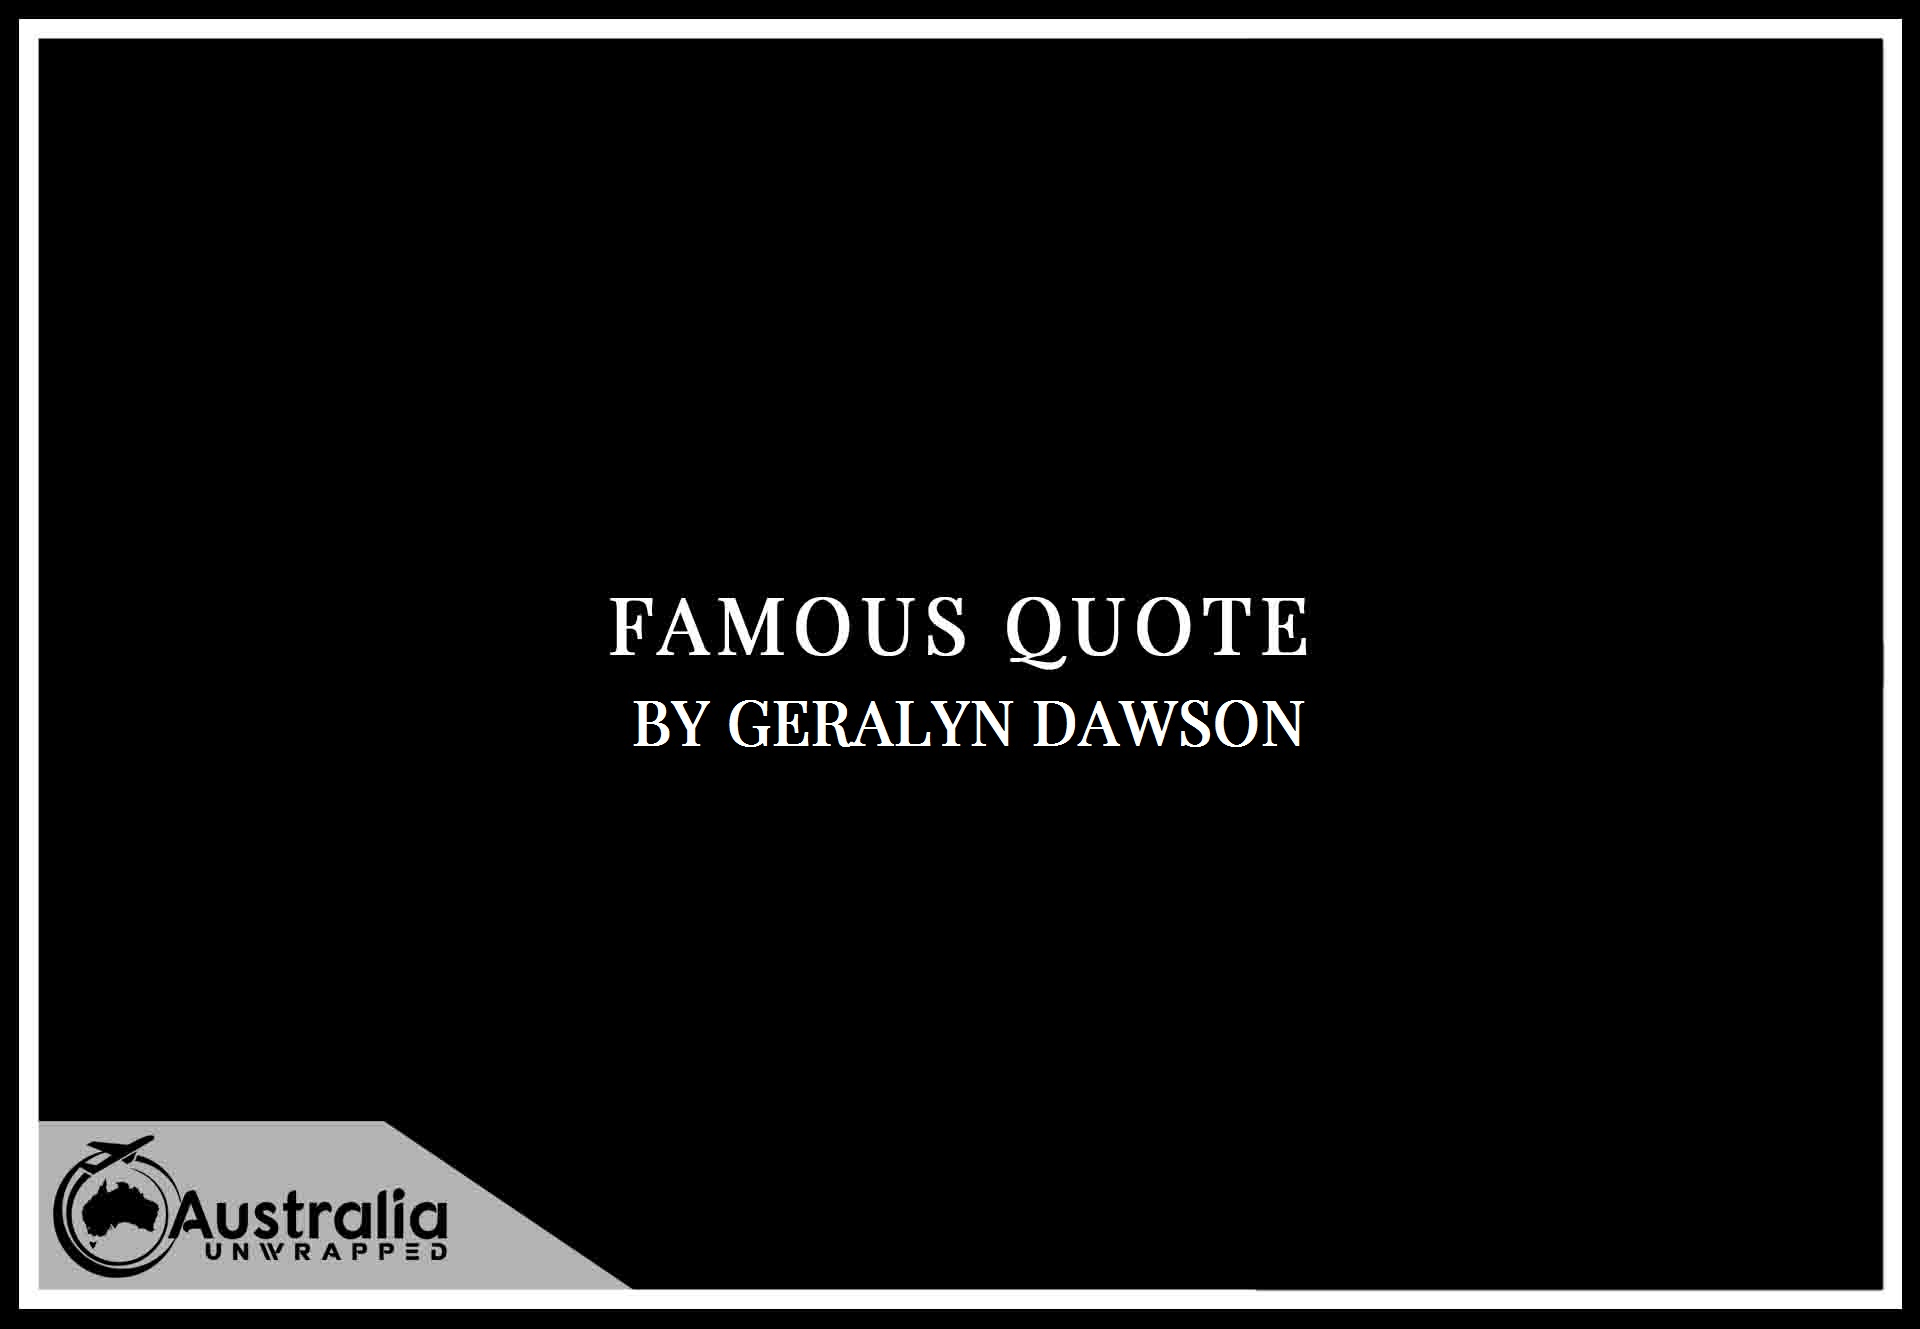 Geralyn Dawson's Top 1 Popular and Famous Quotes